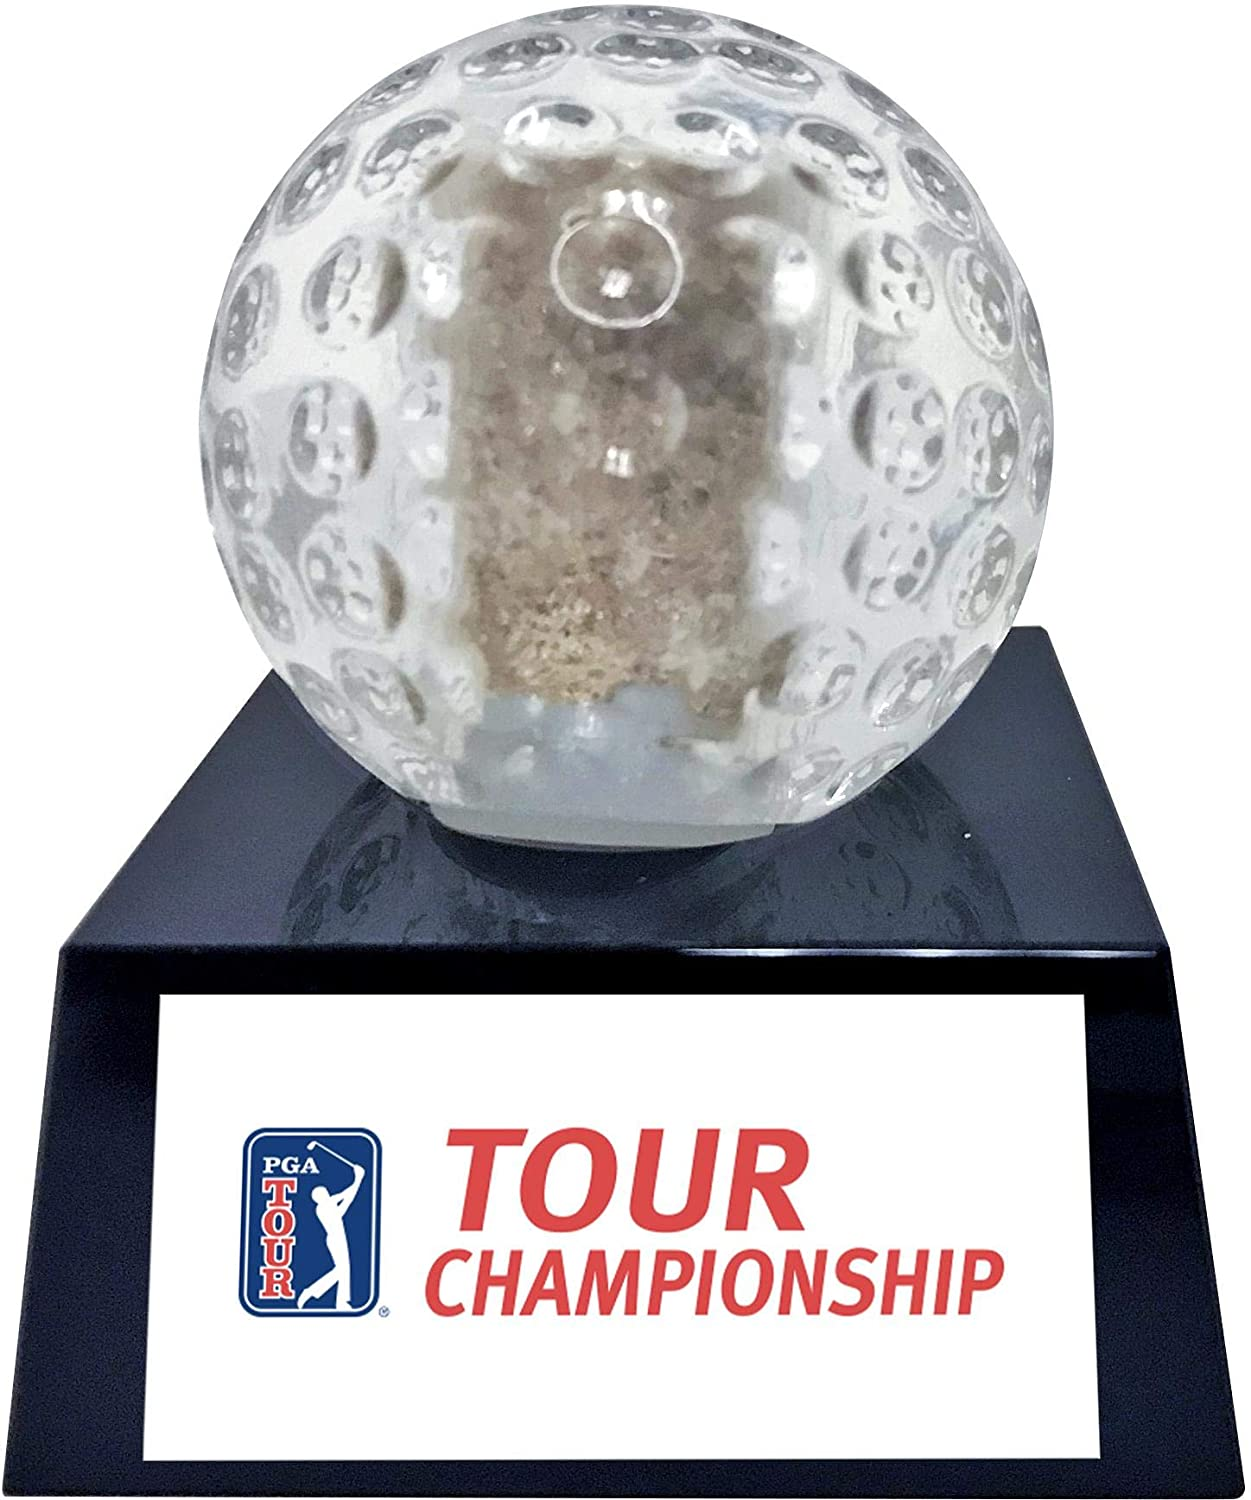 2018 TOUR Championship Crystal Golf Ball - Filled with Bunker Sand from the 2018 TOUR Championship - Golf Tournament Used